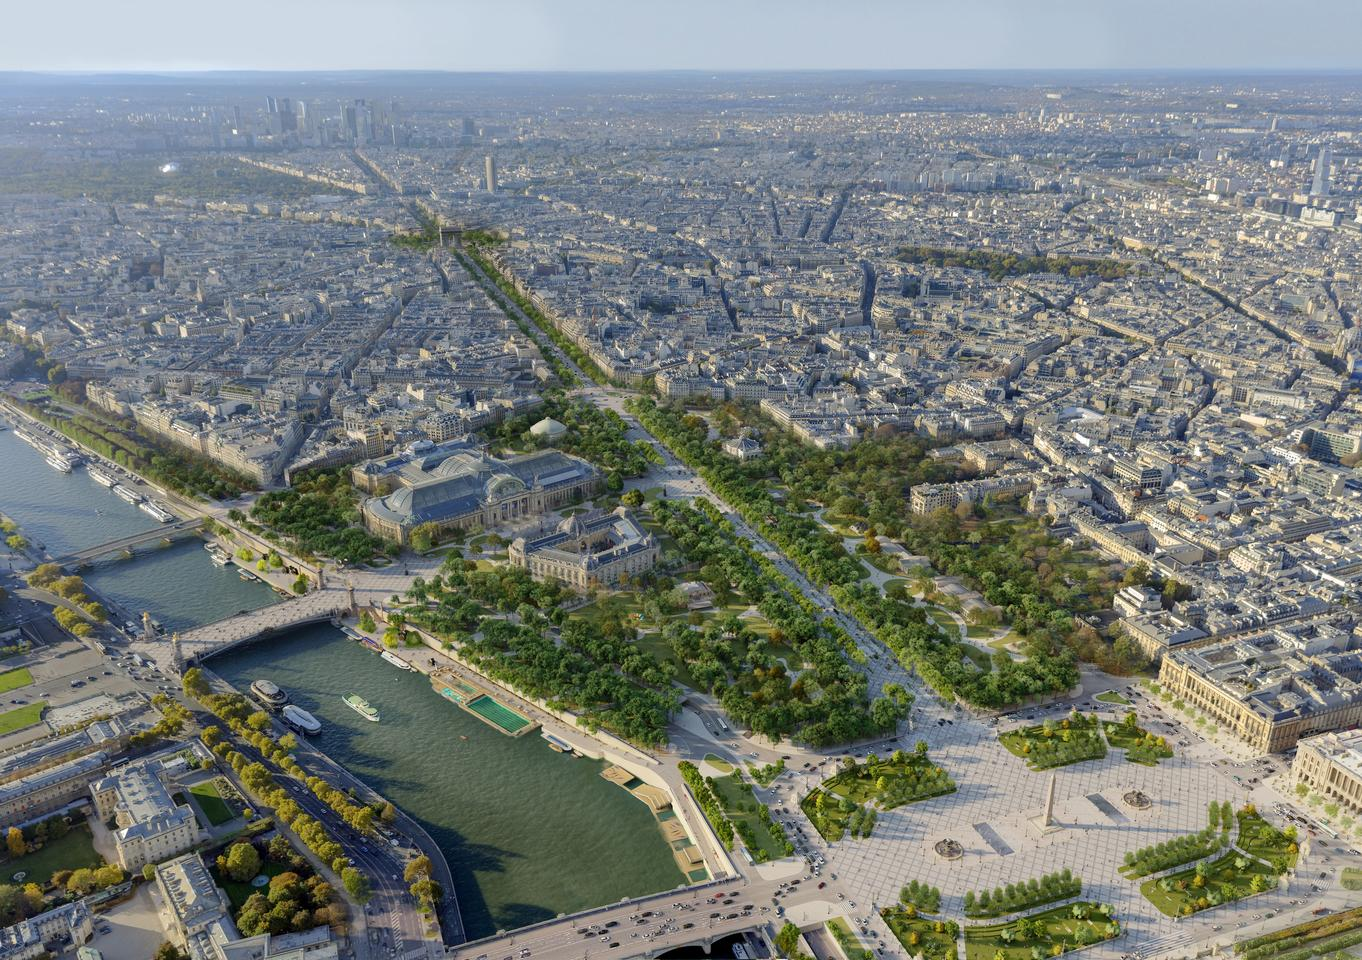 The existing Champs-Élysées gardens will be re-landscaped, with new trees and plants added